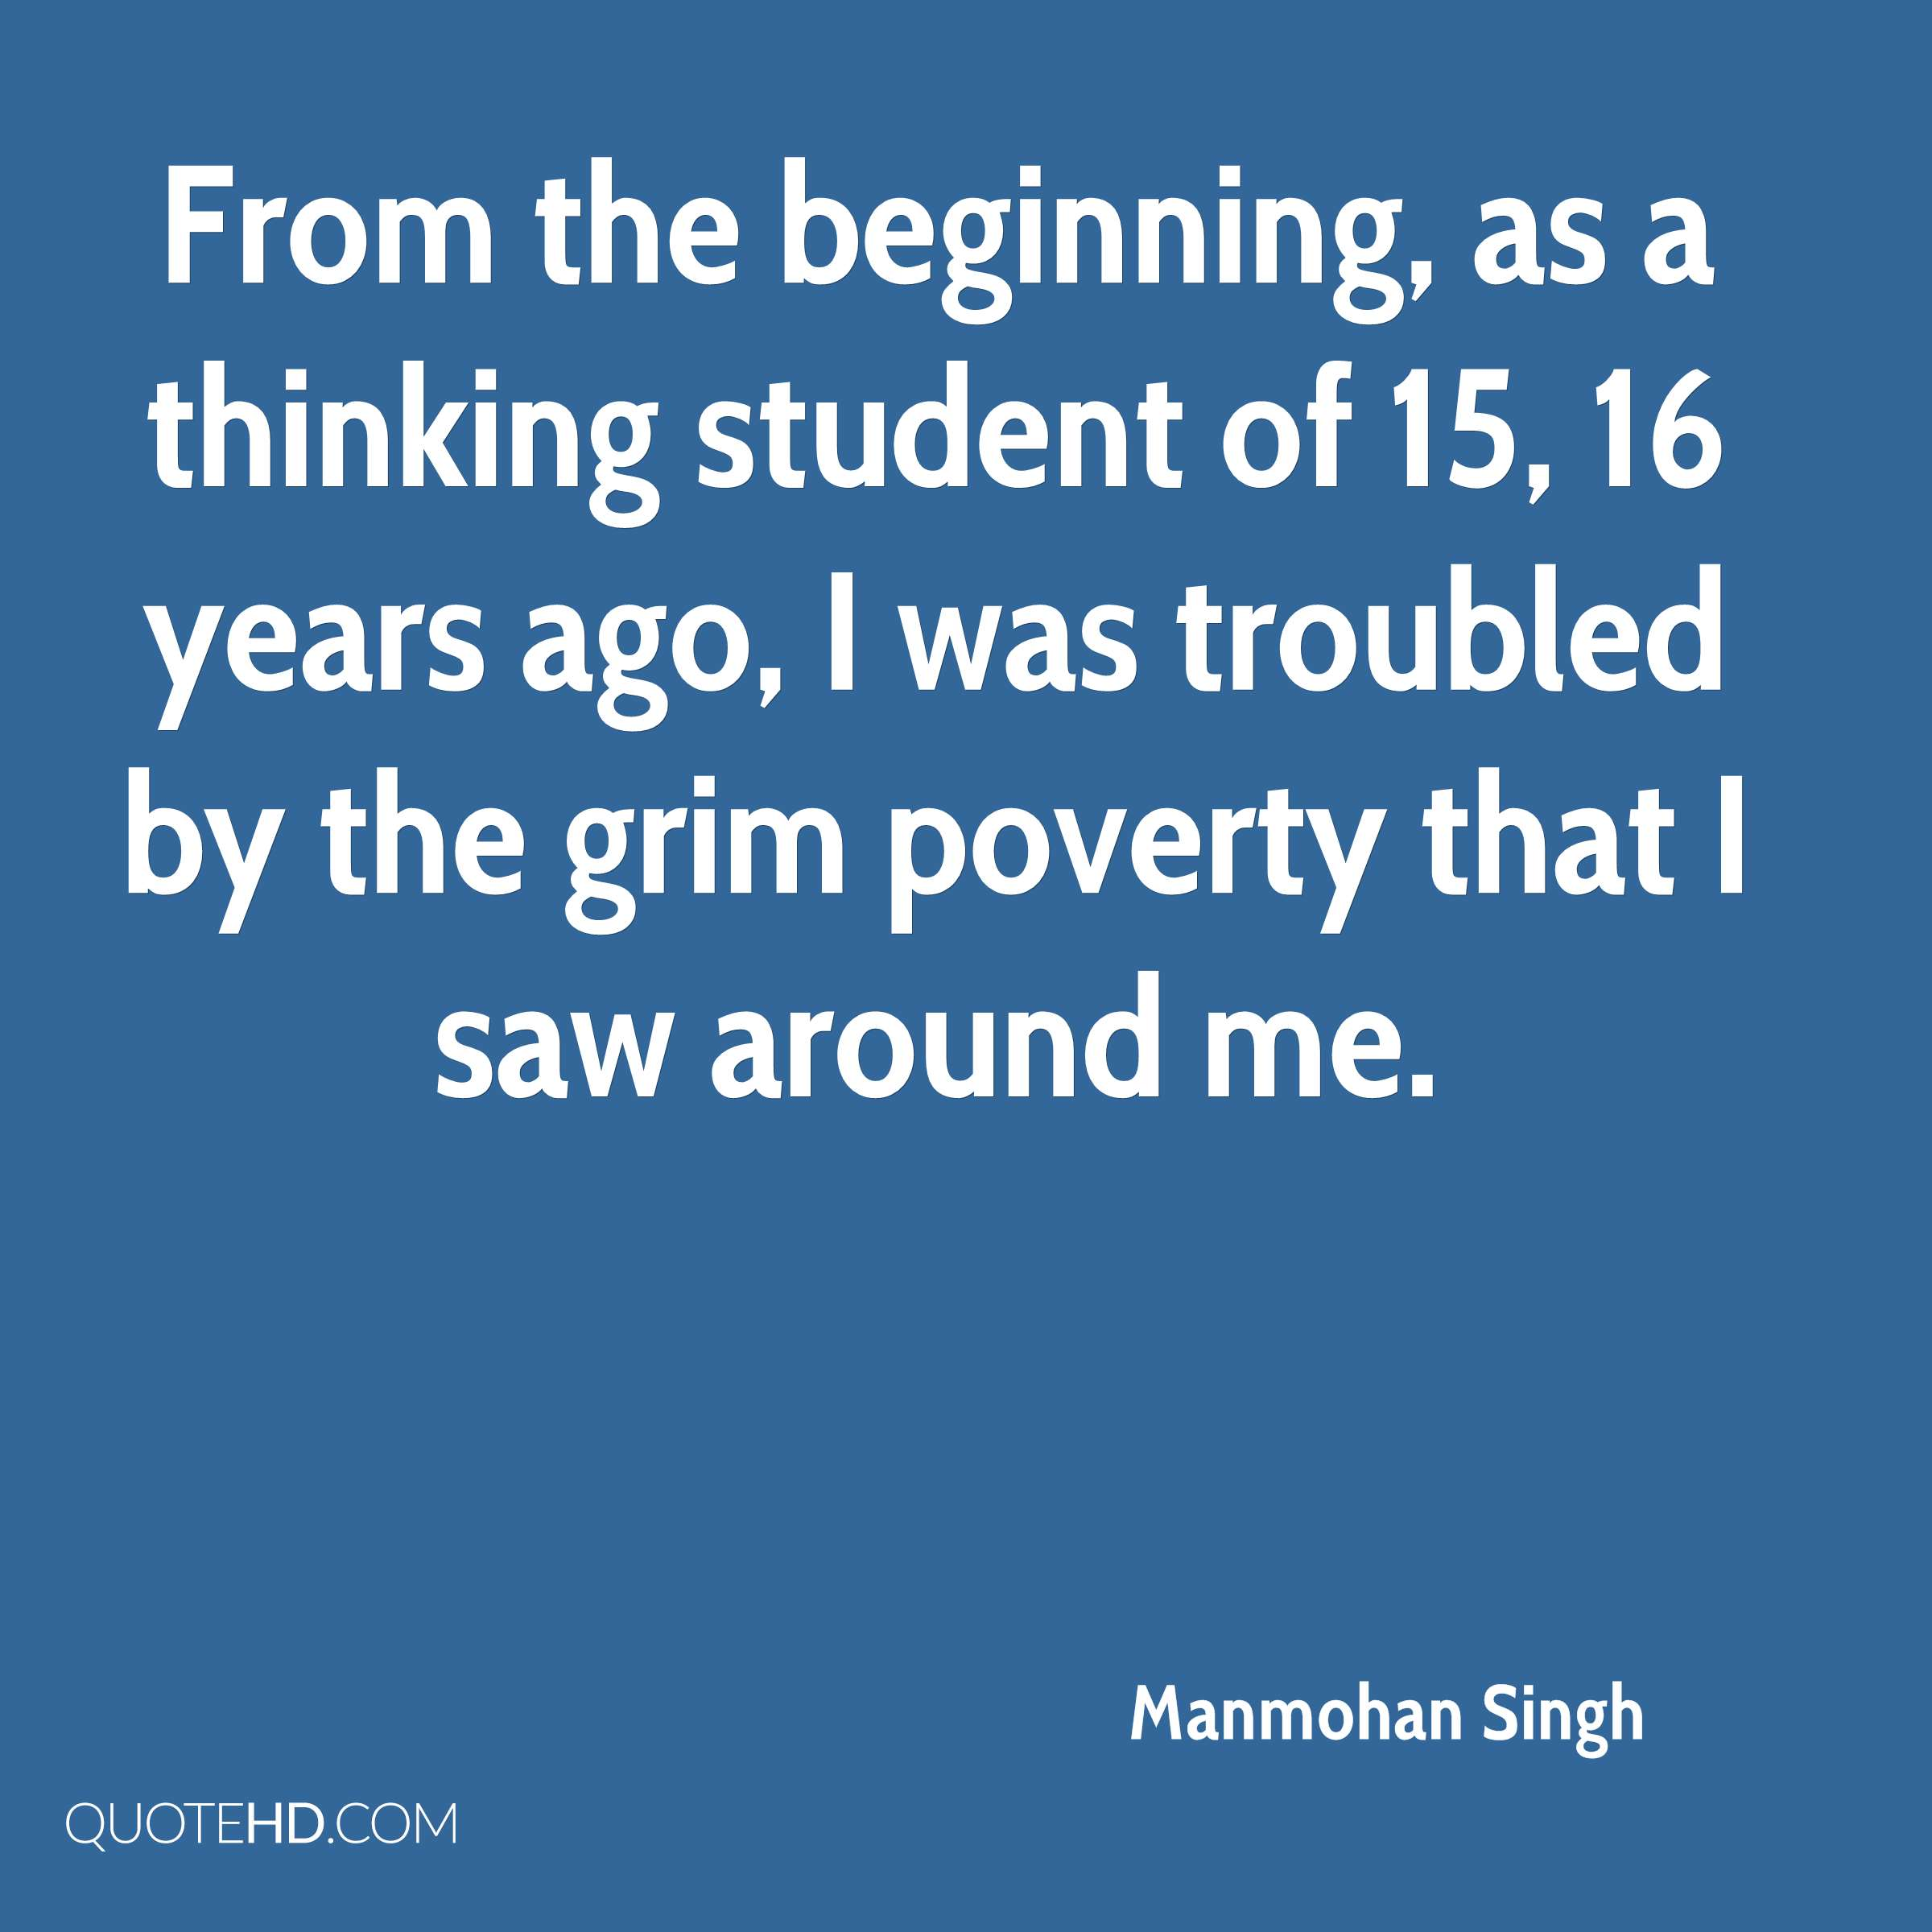 From the beginning, as a thinking student of 15, 16 years ago, I was troubled by the grim poverty that I saw around me.